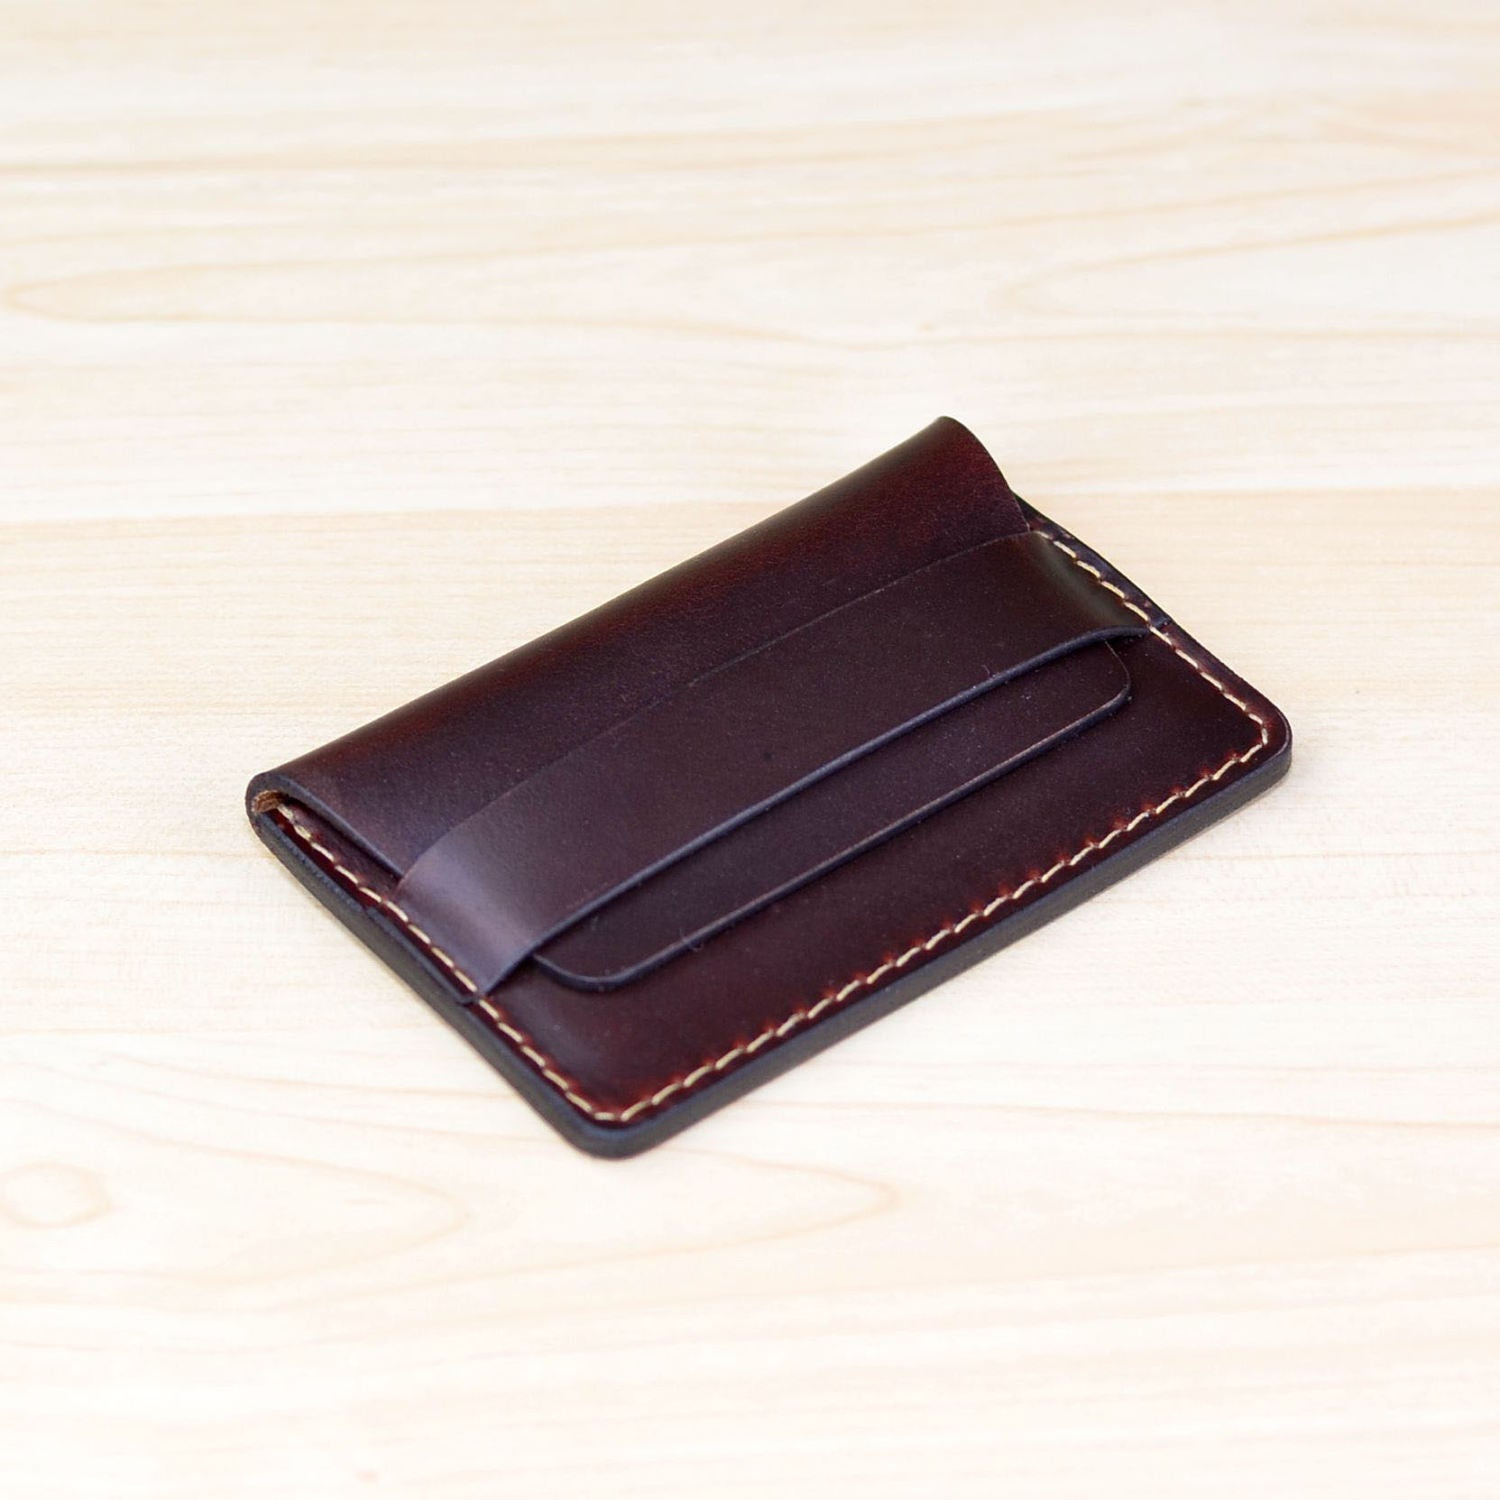 Leather business card holder personalized leather business card leather business card holder personalized leather business card case leather card case horizontal magicingreecefo Gallery